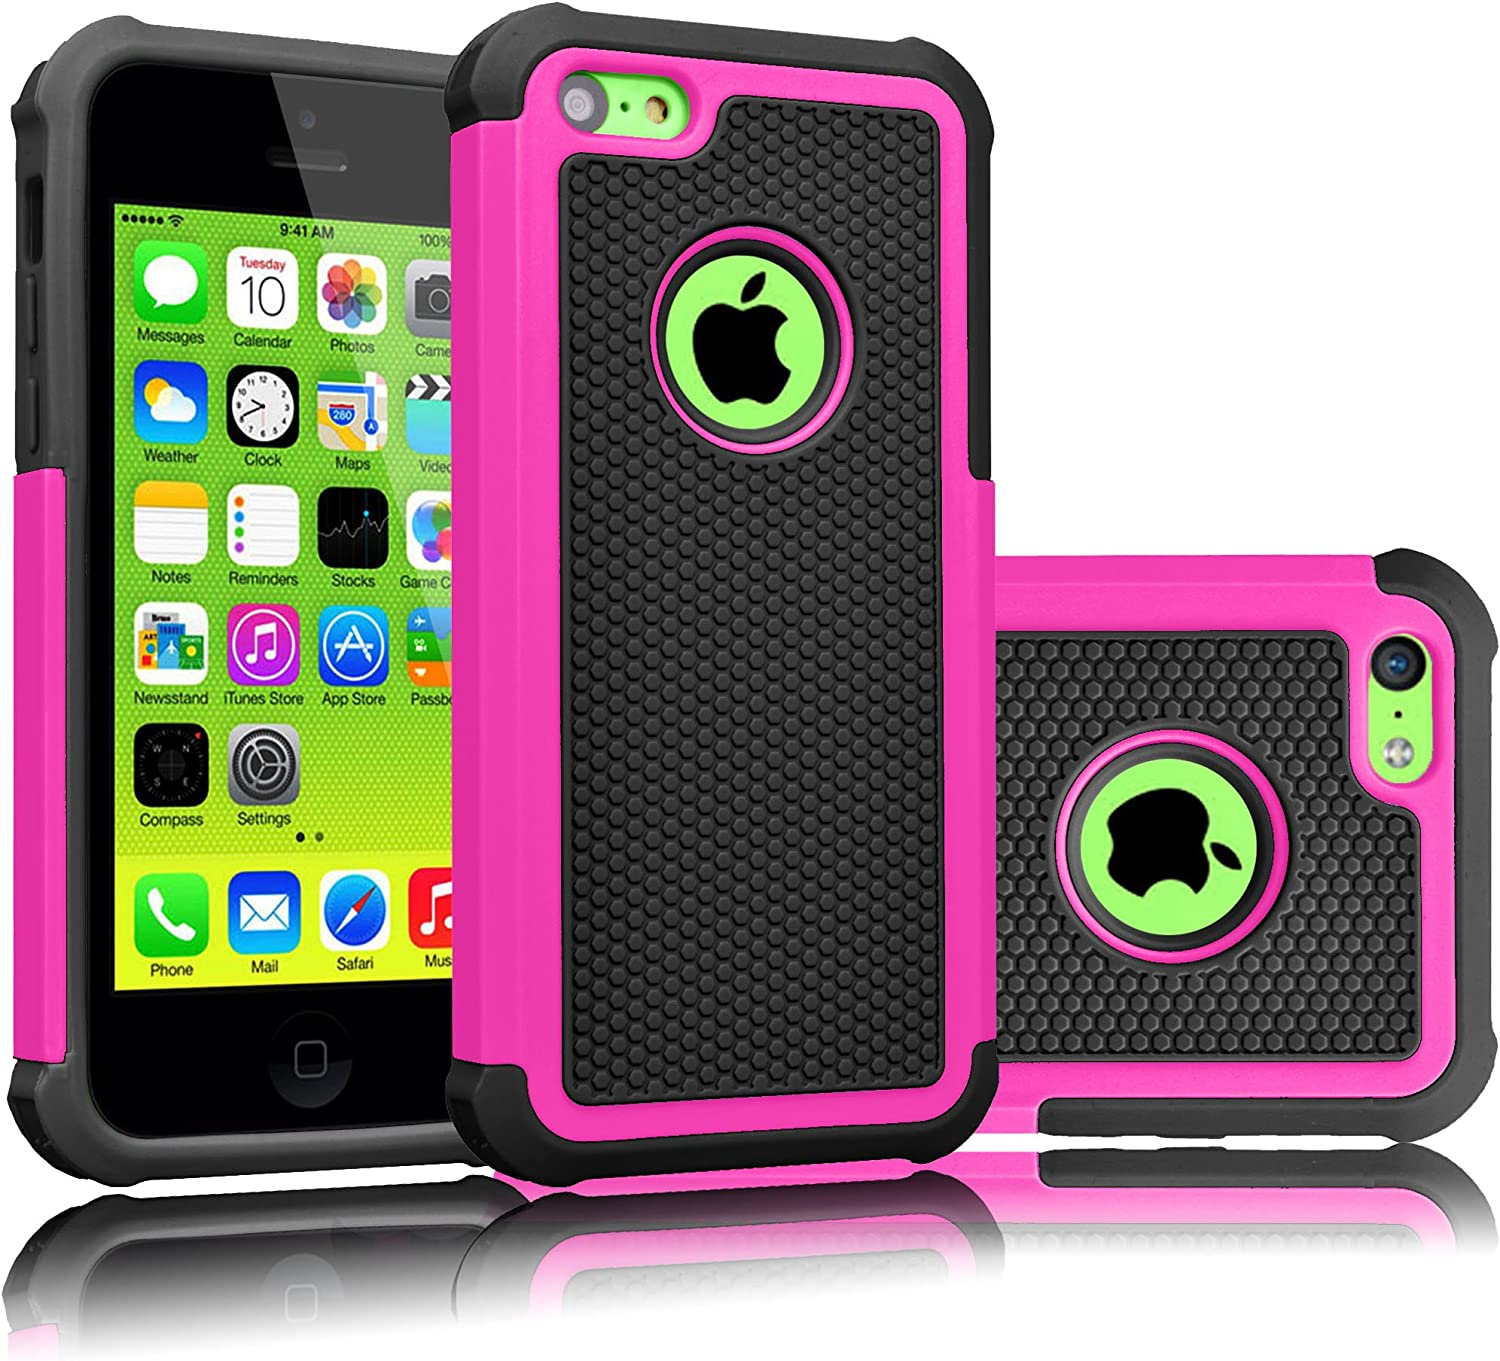 Tekcoo iPhone 5C Case, [Tmajor Series] [Hot Pink/Black] Shock Absorbing Hybrid Impact Defender Rugged Slim Case Cover Shell for Apple iPhone 5C Hard Plastic Outer + Rubber Silicone Inner